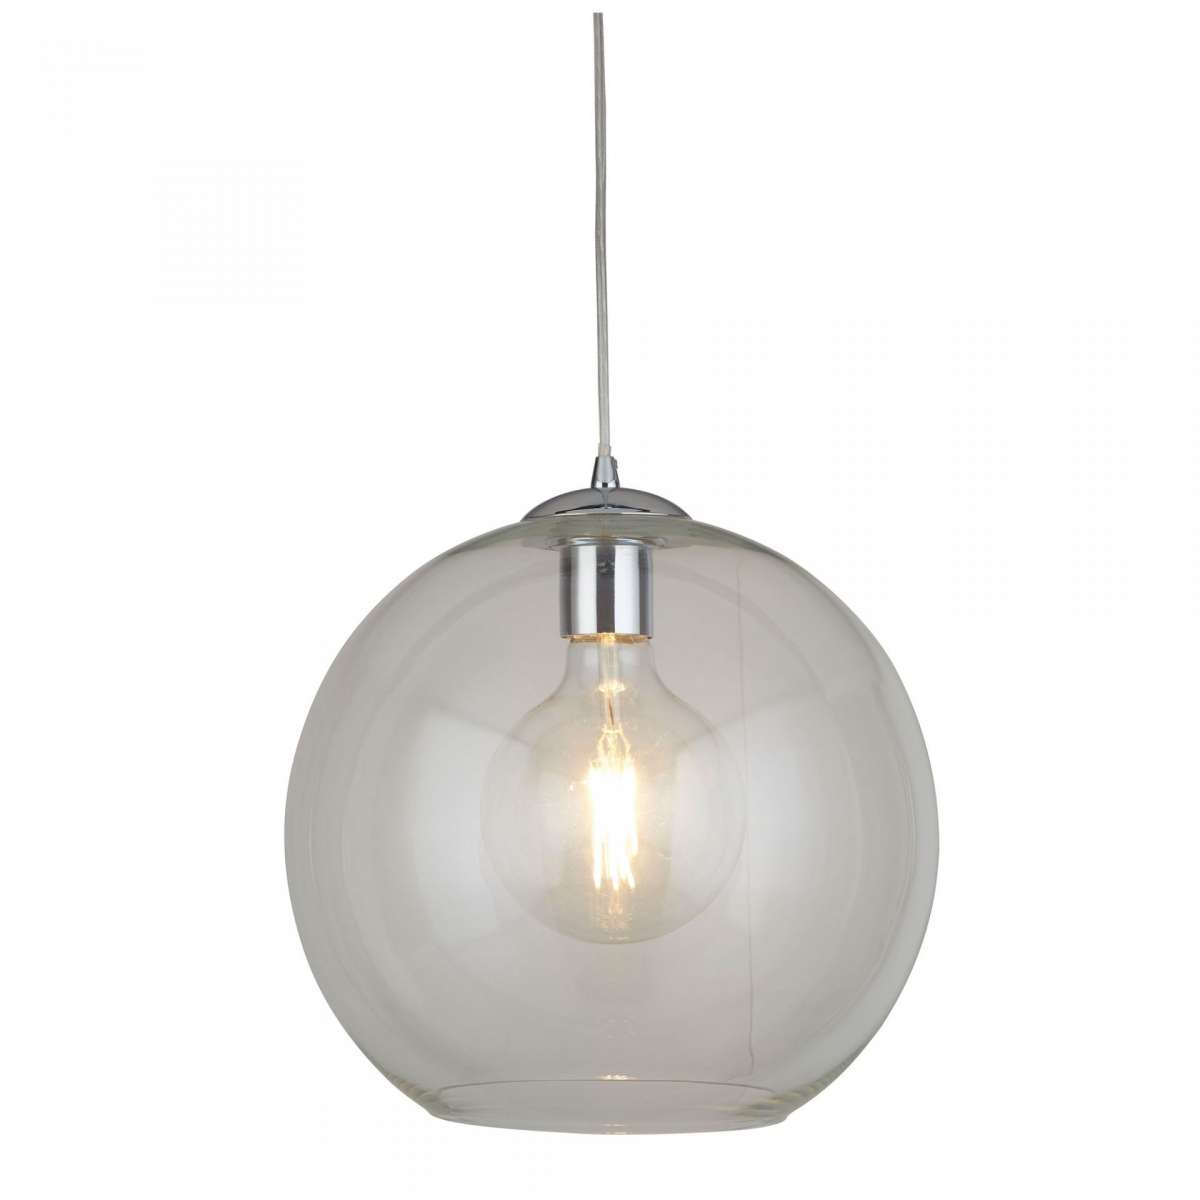 Balls Singe Pendant Round 300mm Clear Glass Chrome